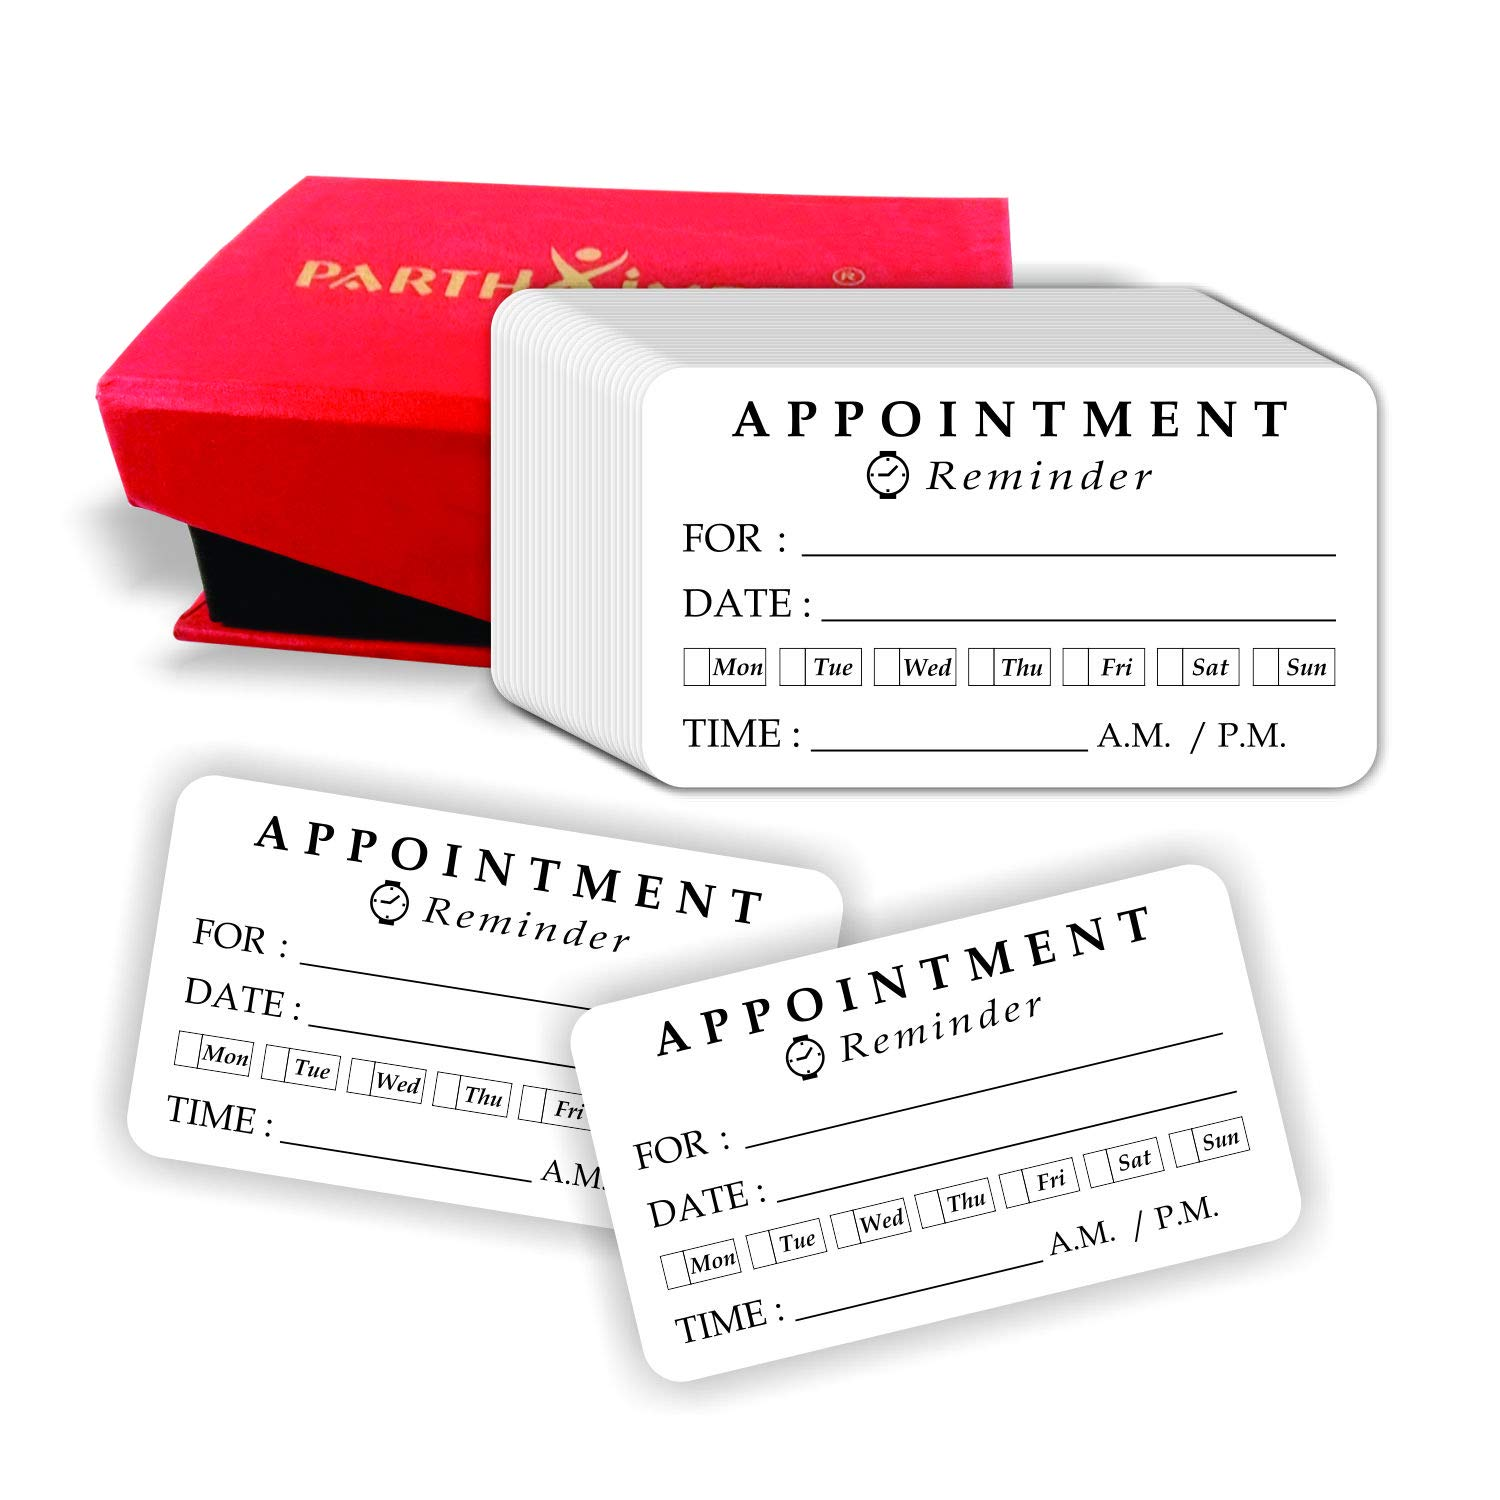 PARTH IMPEX Appointment Reminder Cards 2''x3.5'' White (Pack of 100) 14PT Cardstock Rounded Corner for Business Home Office Customer Service Meeting Day Date Time Planner with Handmade Storage Box